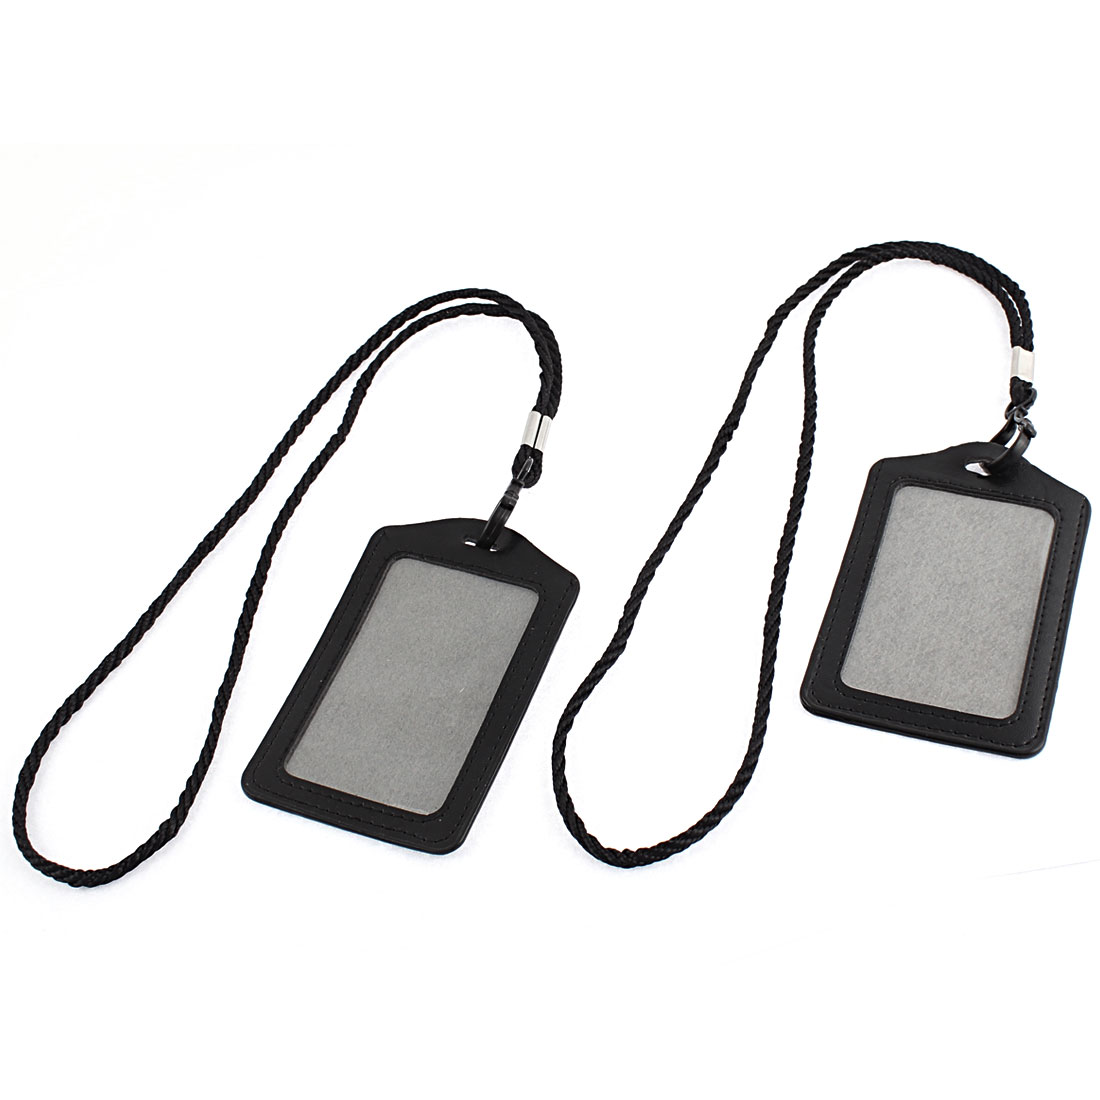 Faux Leather Vertical Design Lanyard Company Name Badge Card Holder Black 2pcs